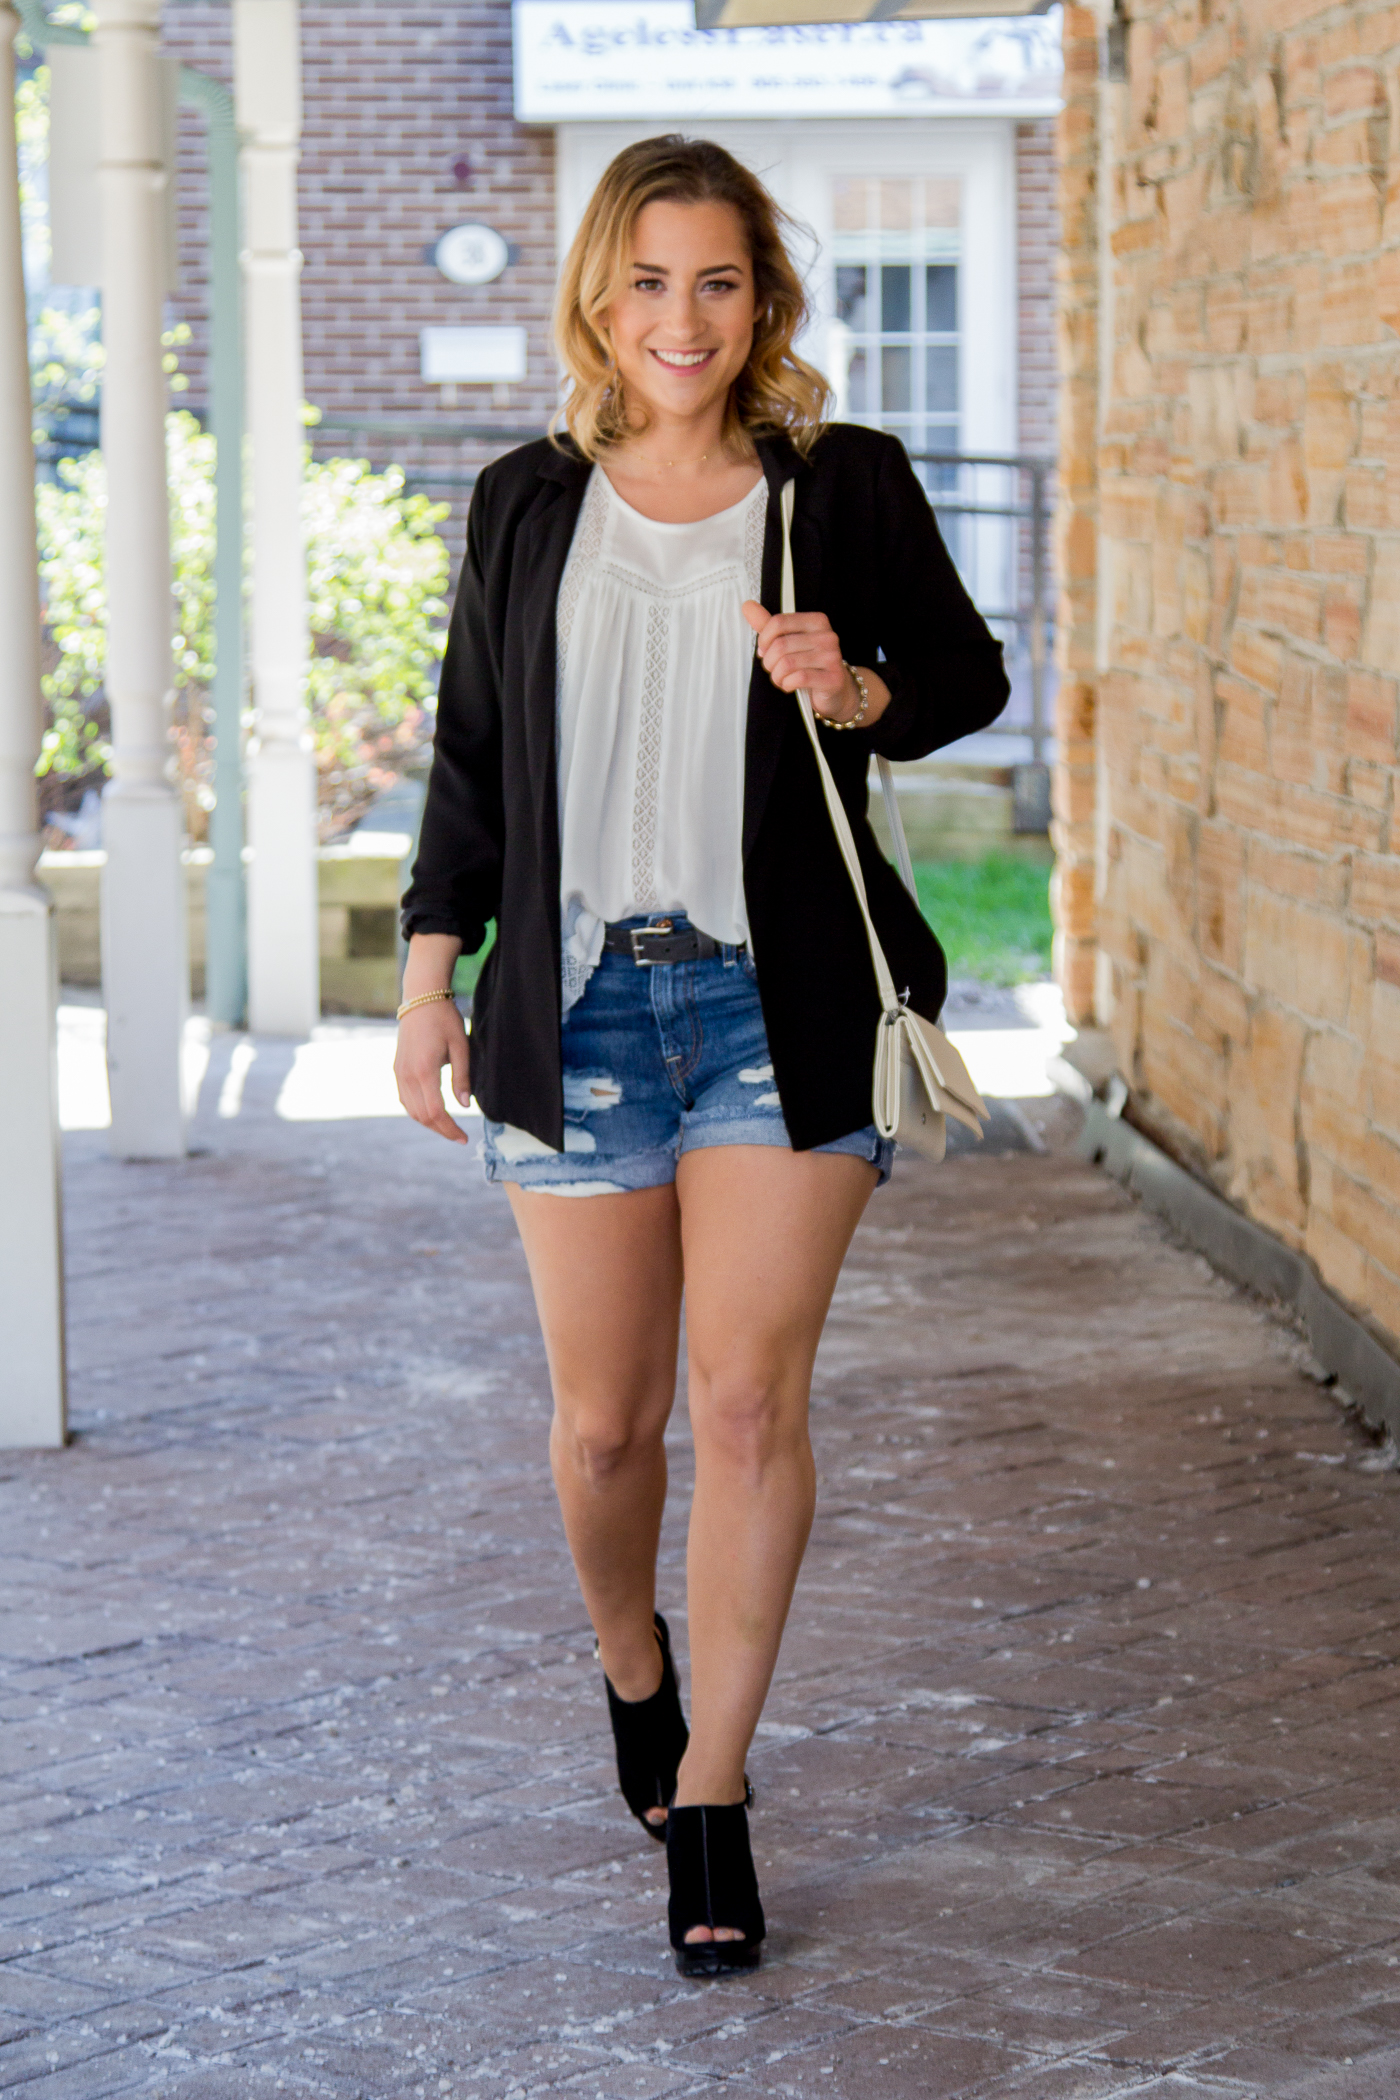 Toronto lifestyle and fashion blogger, Jackie of Something About That, wearing a chic summer outfit, featuring ripped denim shorts, a black blazer and flowy white Gentle Fawn top